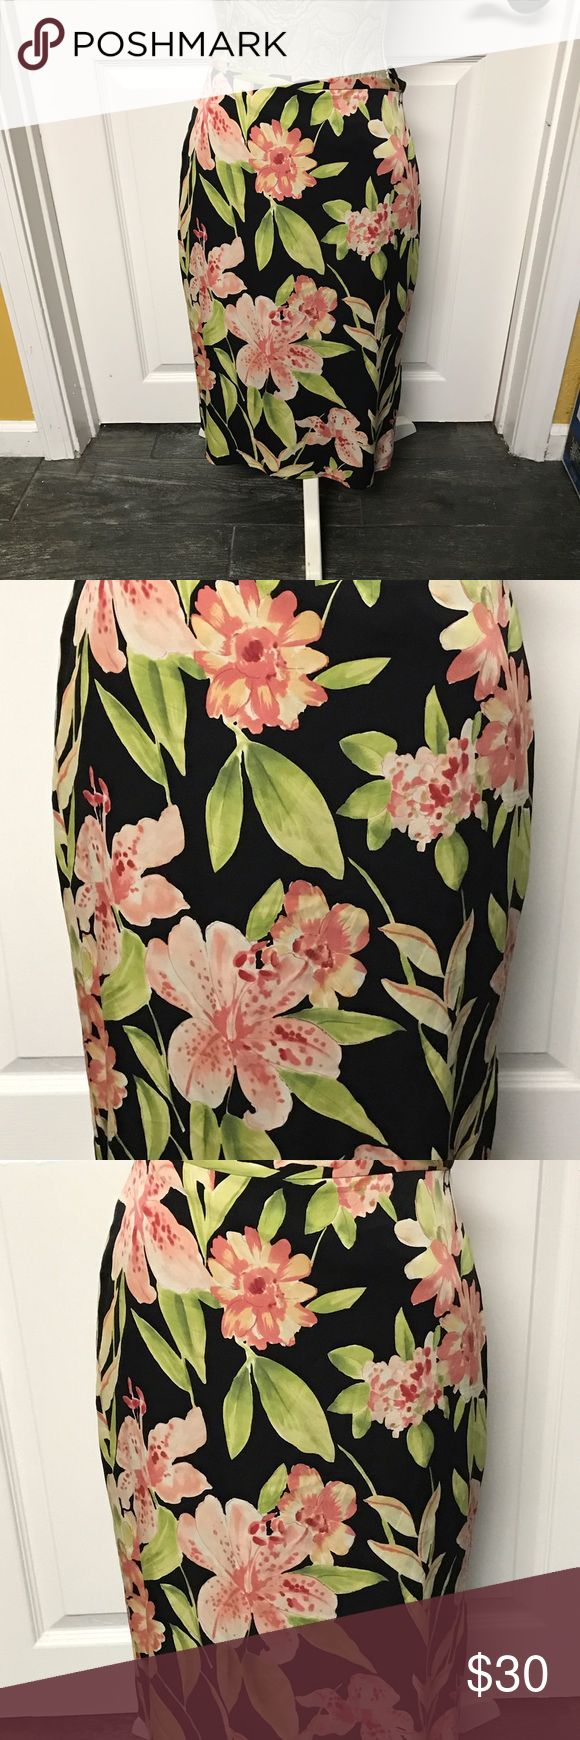 🎉SALE🎉TOMMY BAHAMA WOMEN'S FLORAL SKIRT SIZE 6 🎉SATURDAY SALE🎉TOMMY BAHAMA WOMEN'S FLORAL STRETCH SKIRT MADE OF 93% SILK 7% SPANDEX. THE SKIRT IS LINED 100% SILK. COLOR IS BLACK WITH PRETTY GREENS, PINKS AND WHITE.  THE SIZE IS 6.  THE SKIRT ZIPS UP IN THE BACK AND BUTTONS AT TOP. GREAT CONDITION! Tommy Bahama Skirts